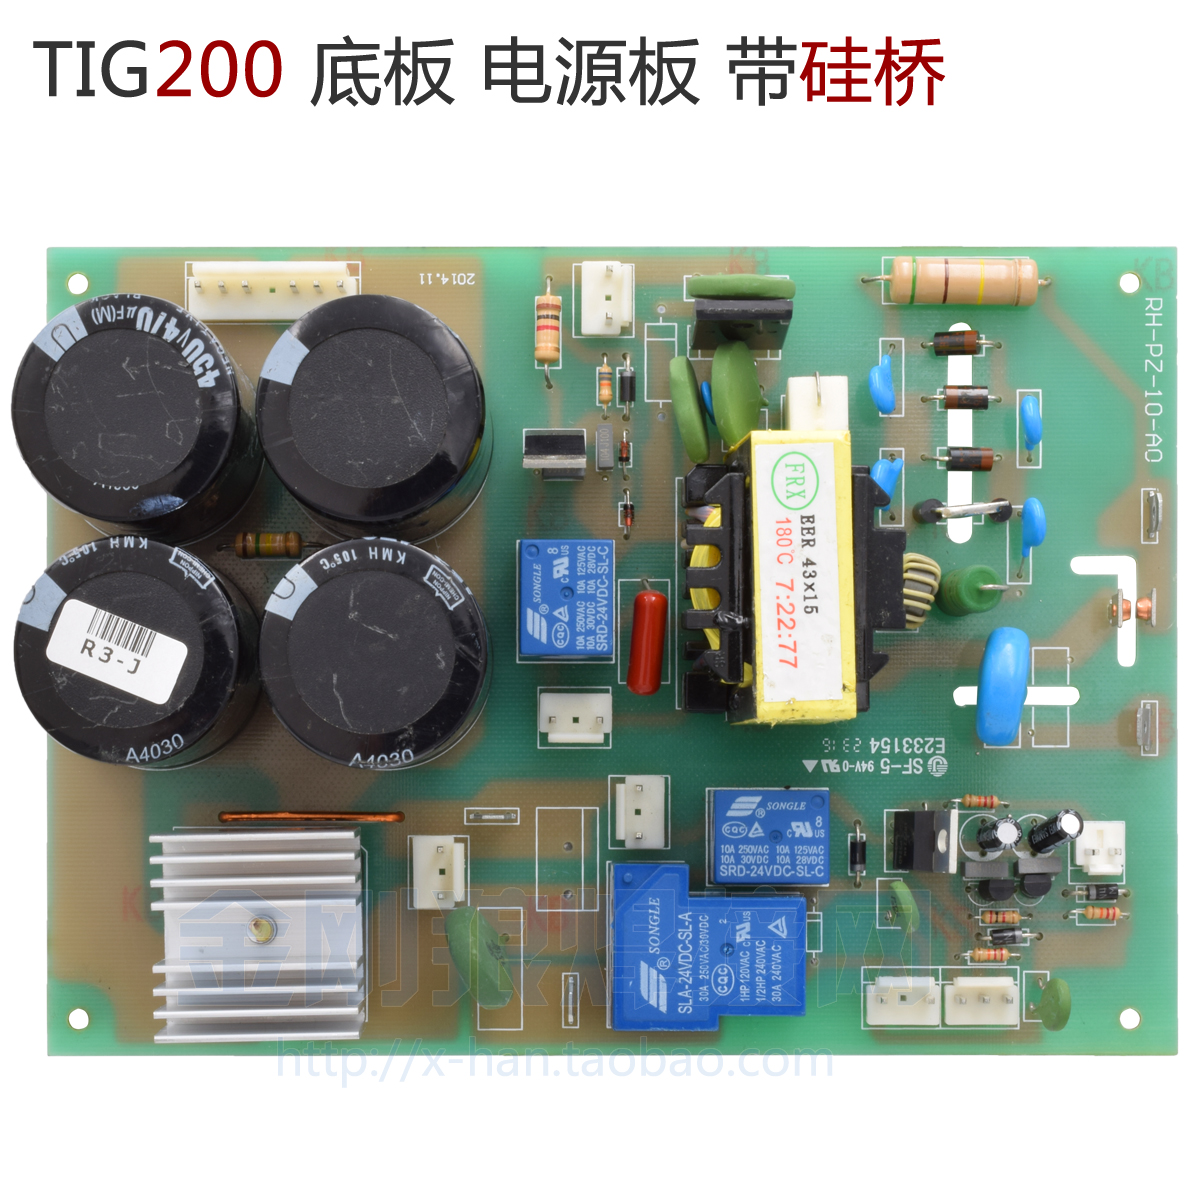 TIG200 Inverter Welding Machine Base Board Power Supply Board High Frequency Arc Ignition Plate High Pressure PlateTIG200 Inverter Welding Machine Base Board Power Supply Board High Frequency Arc Ignition Plate High Pressure Plate